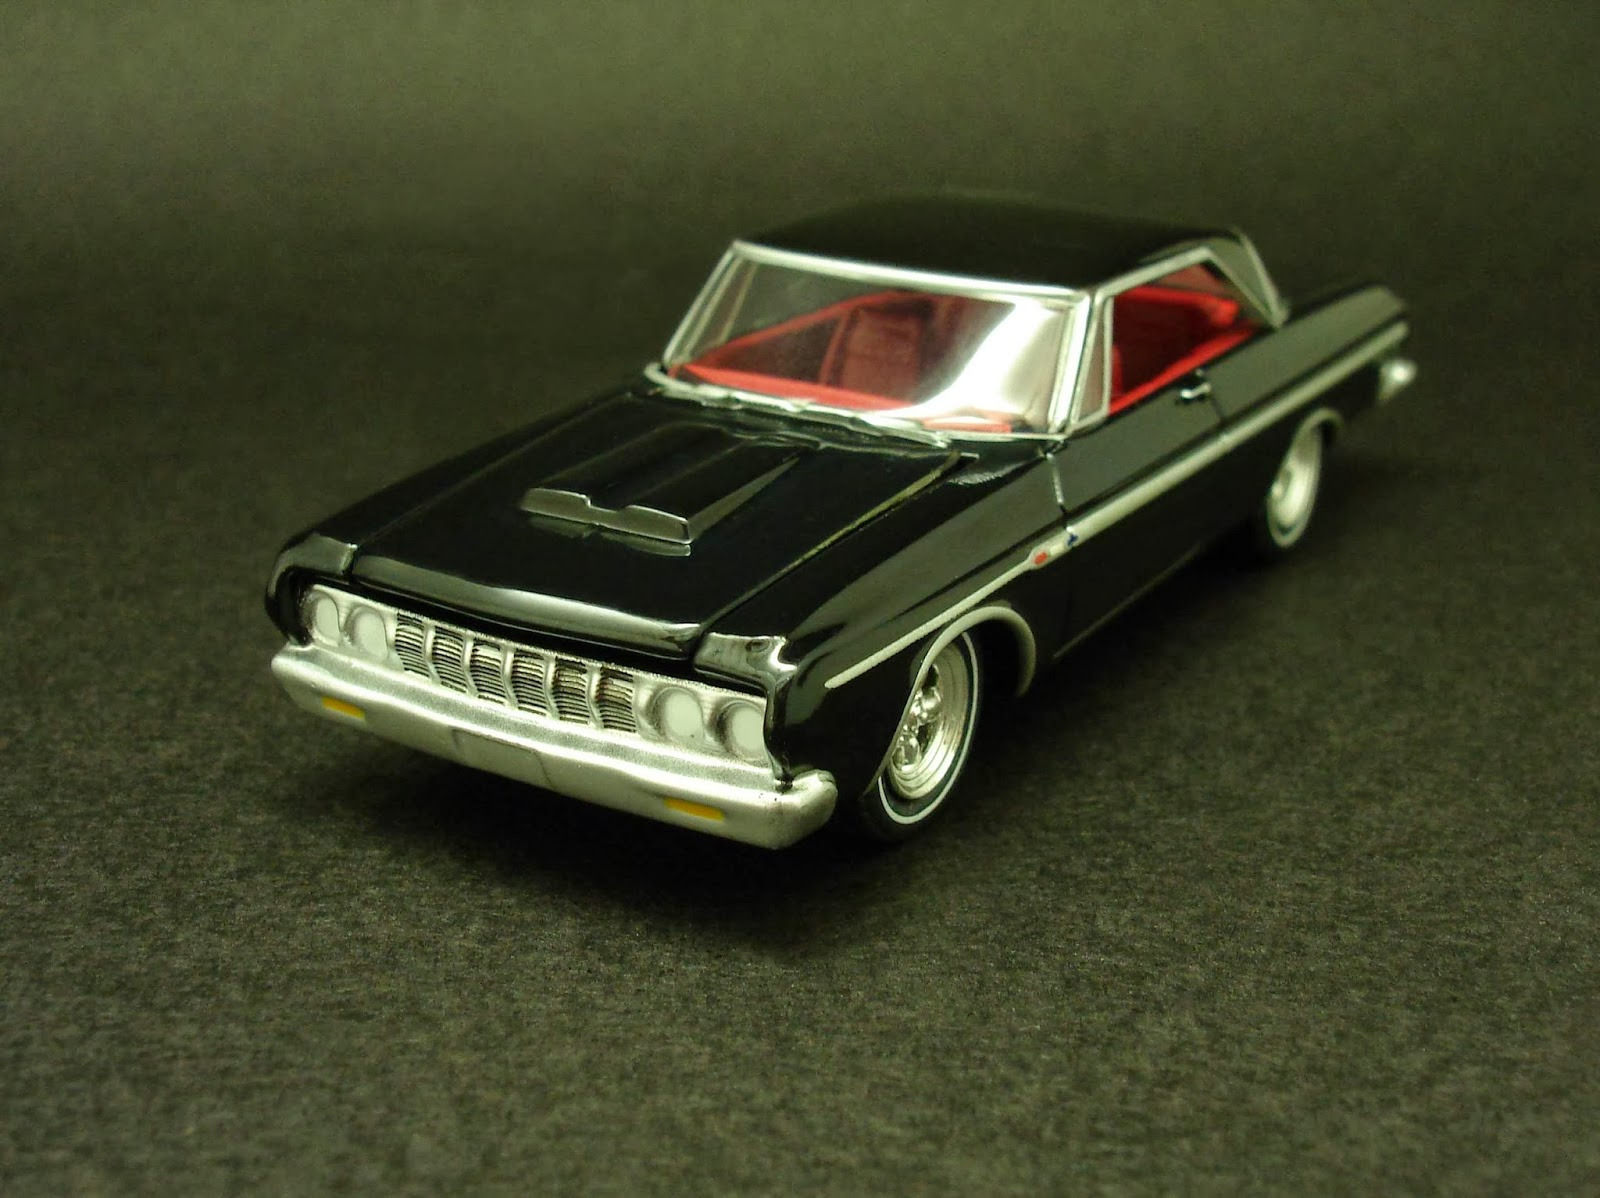 Diecast Hobbist 1964 Plymouth Fury Max Wedge Dodge 164 Scale From Greenlight Muscle Car Garage Stock Custom Series 4 Color A